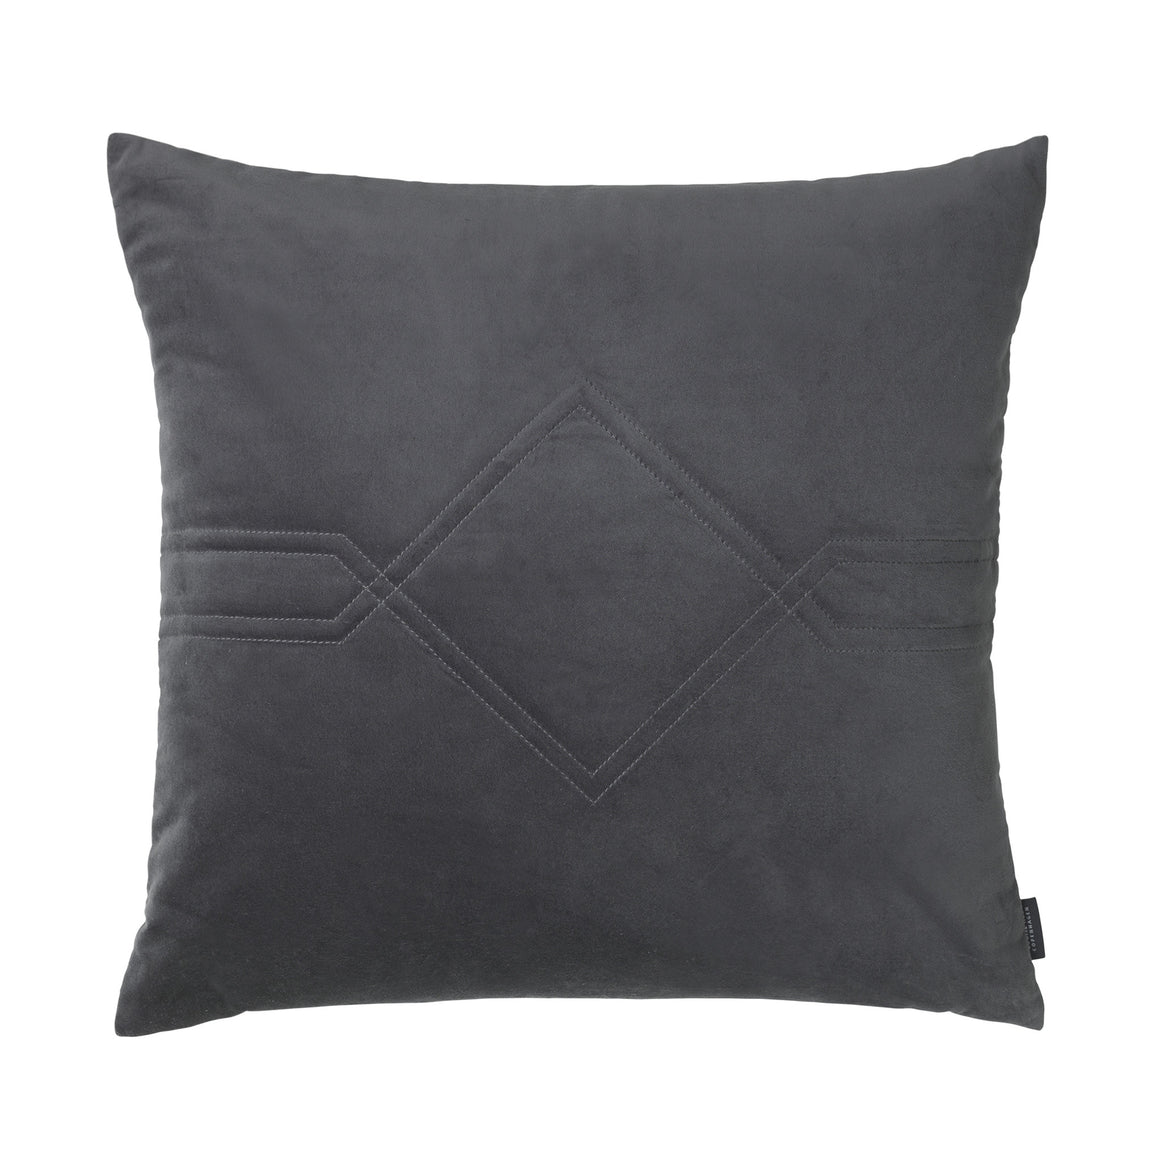 Louise Roe Diamond Quilted pude i velour, Velvet/Remix Evening Grey